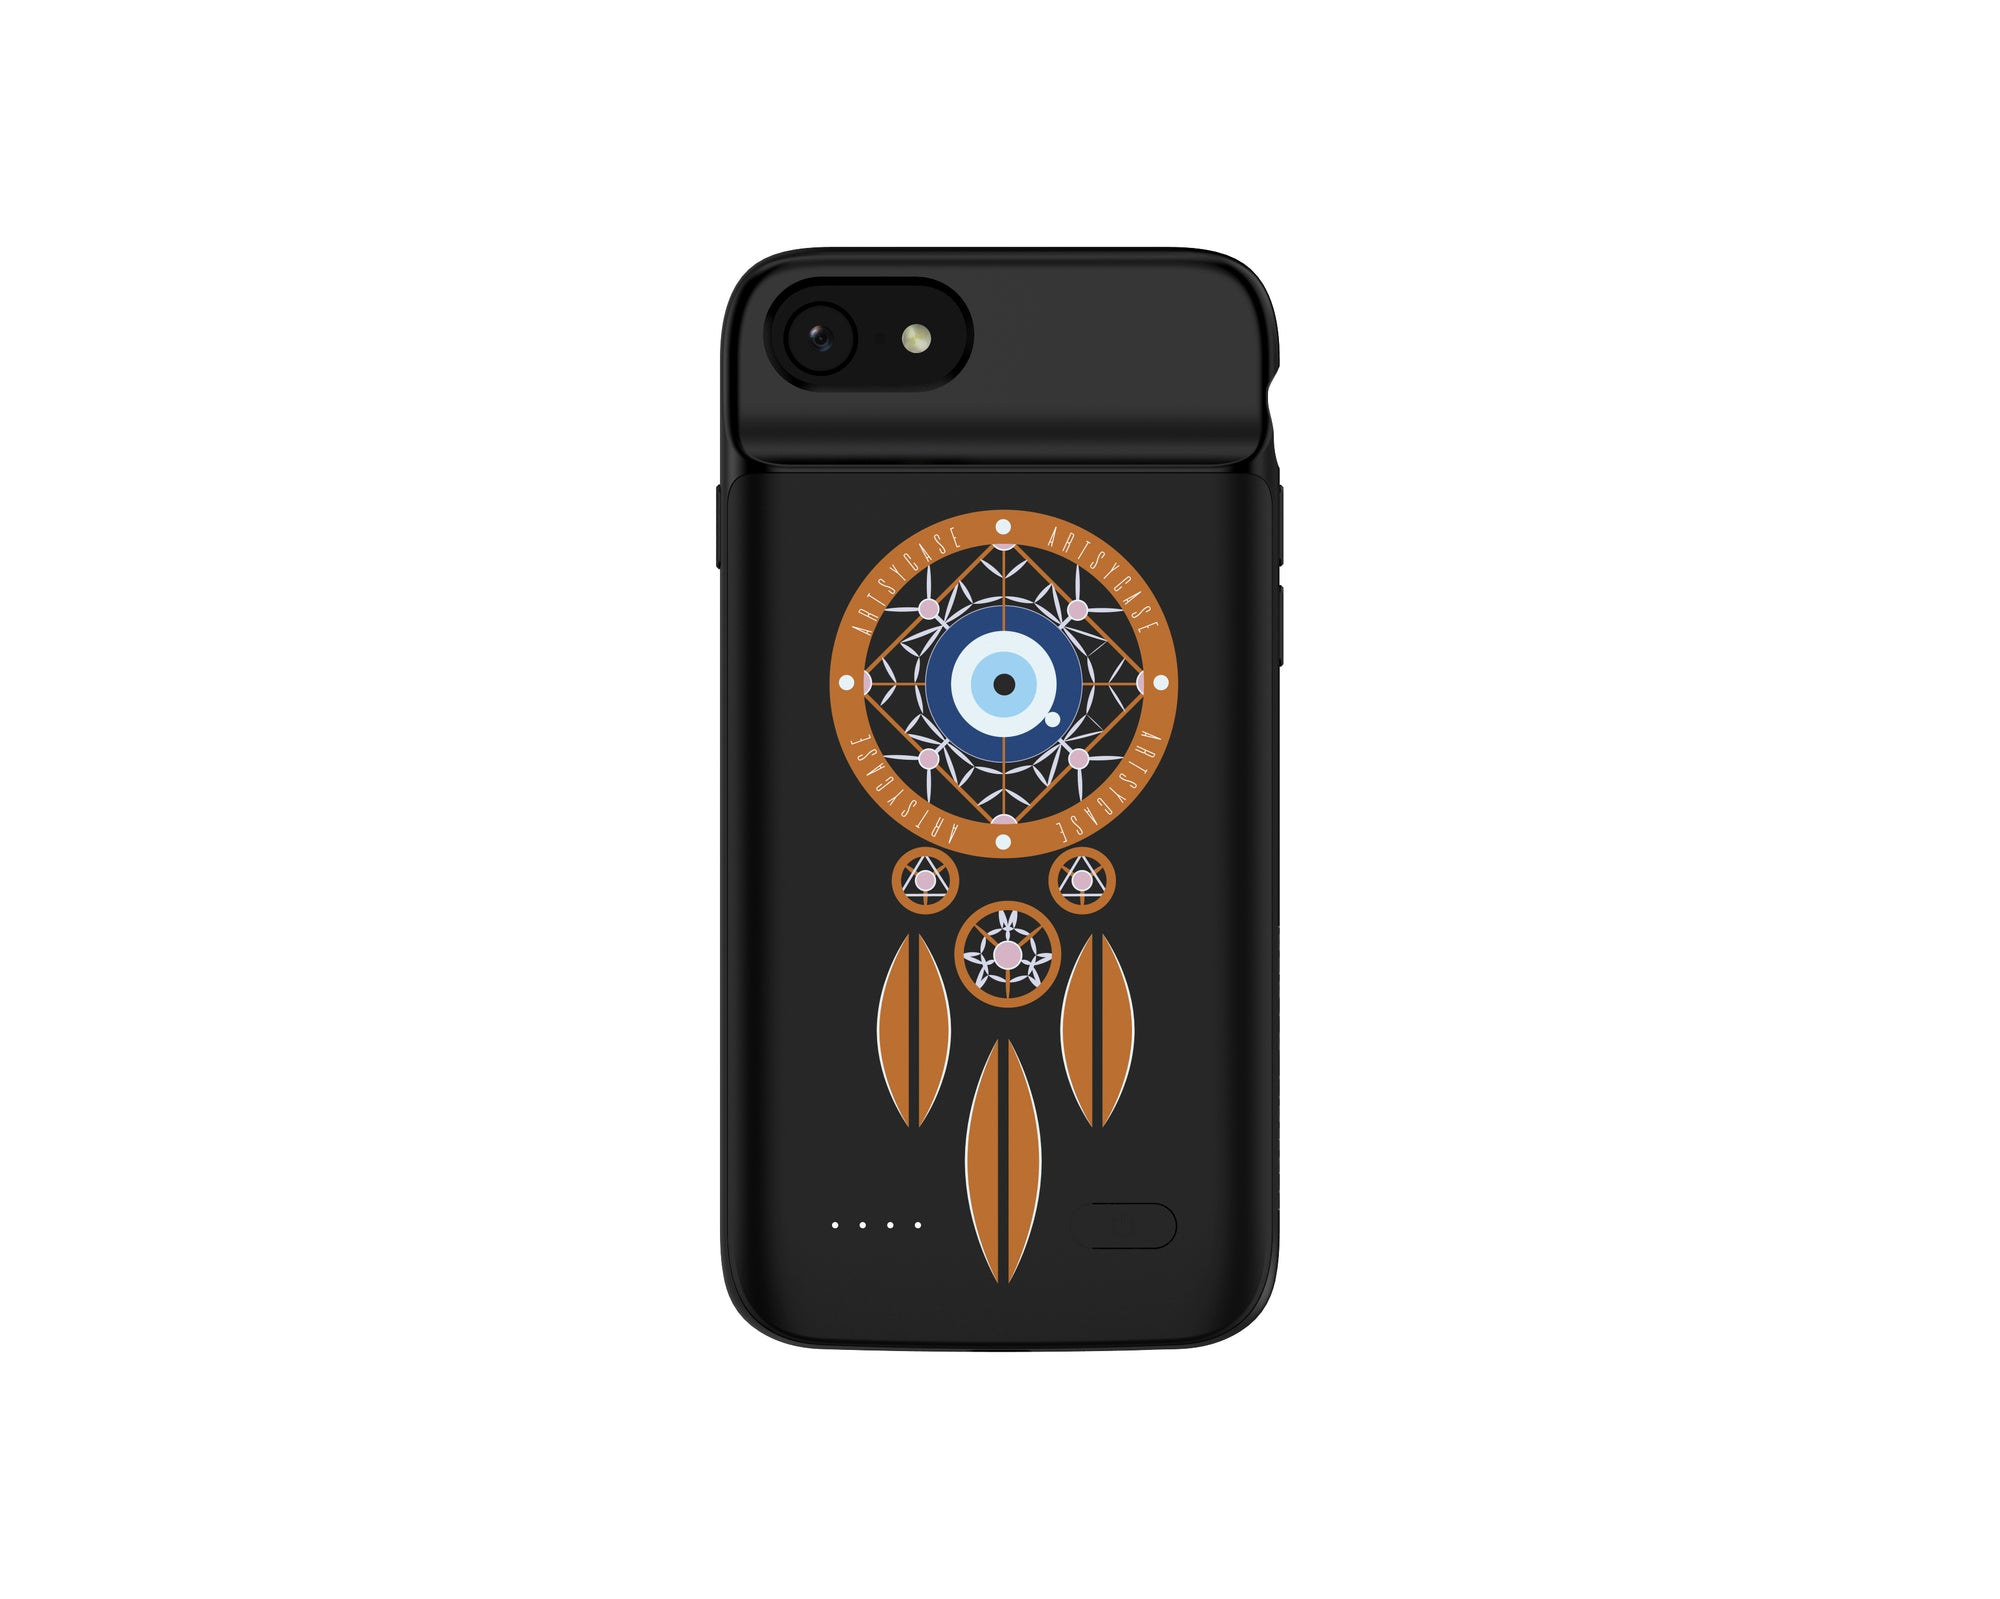 iPhone 6/6s/7/8/SE Dreamcatcher